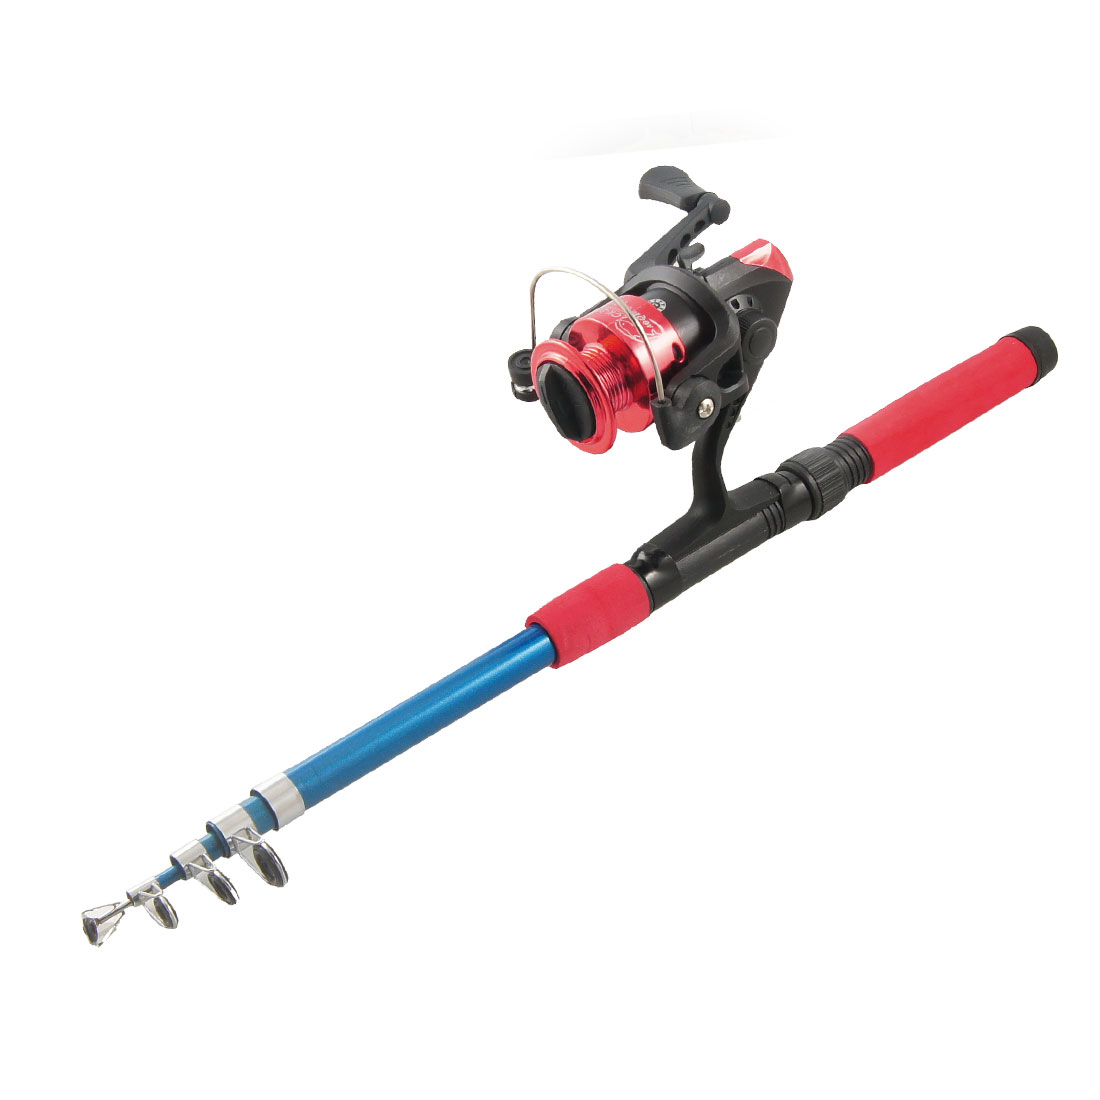 Red 5 Sections Retractable Fish Rod 1.65M w Gear Ratio 5.2:1 Spinning Reel